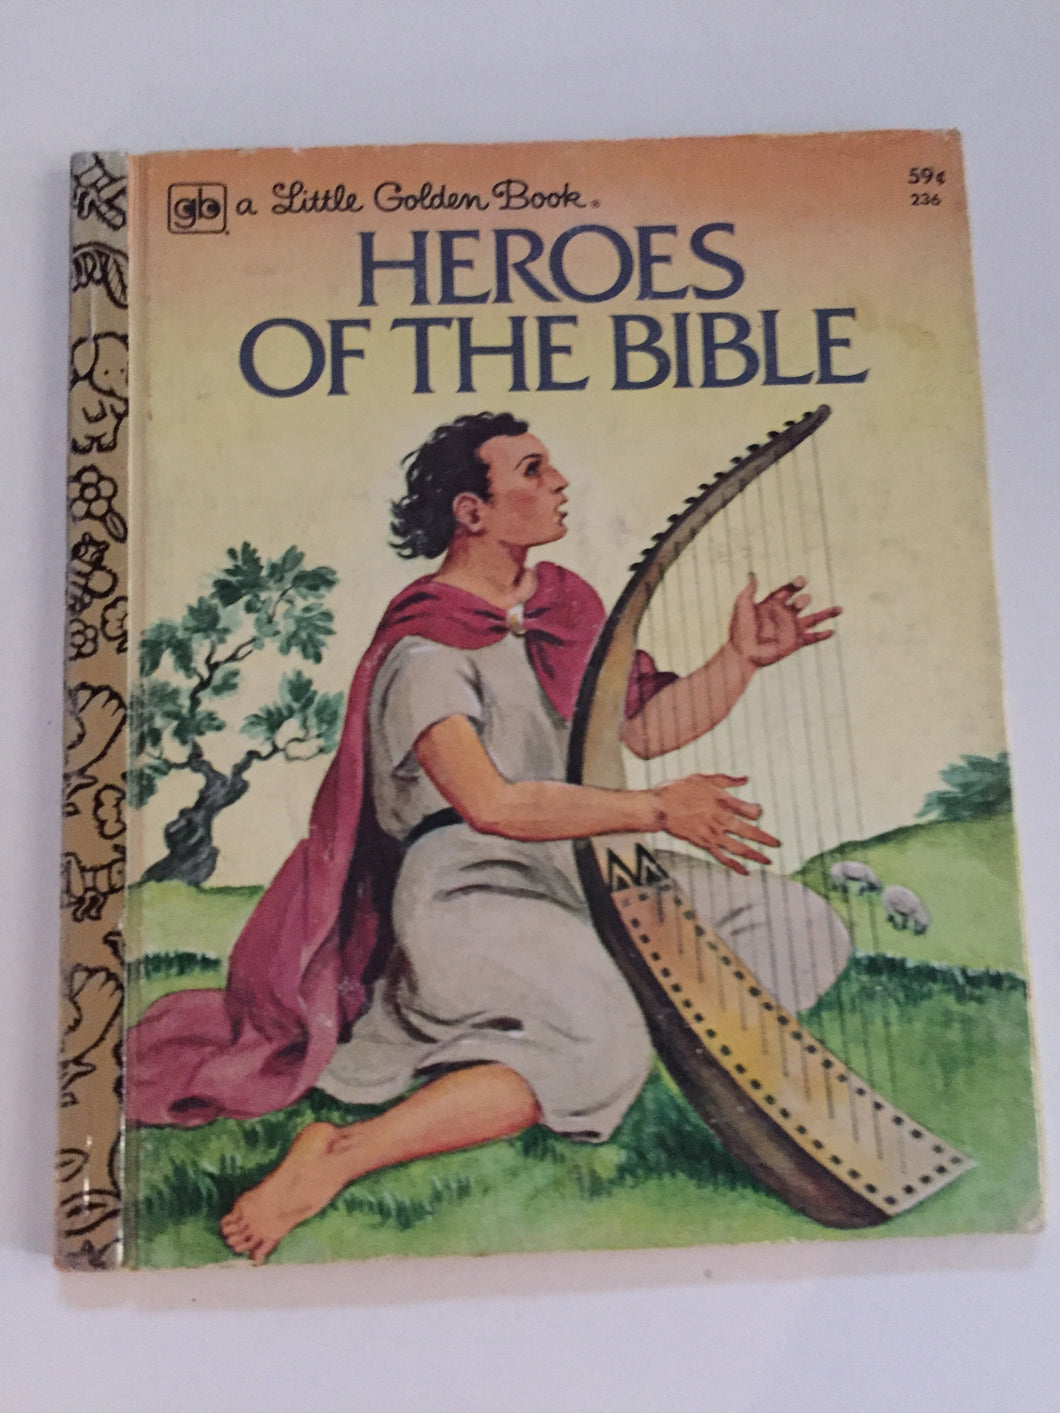 Heroes of the Bible - Slickcatbooks